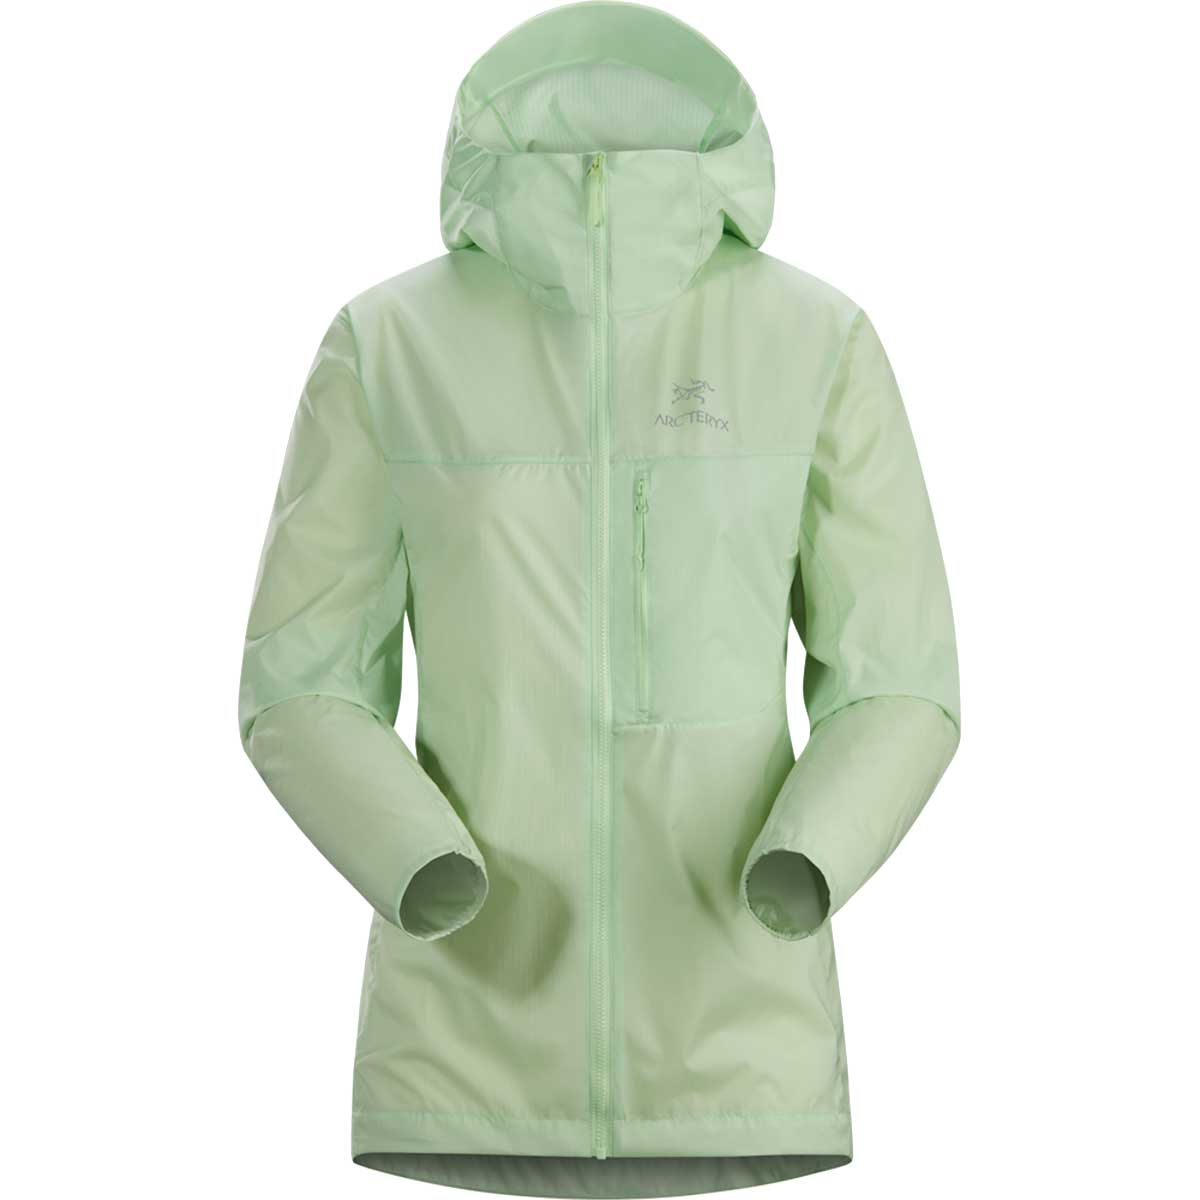 Arcteryx women's Squamish Hoody in Bioprism front view